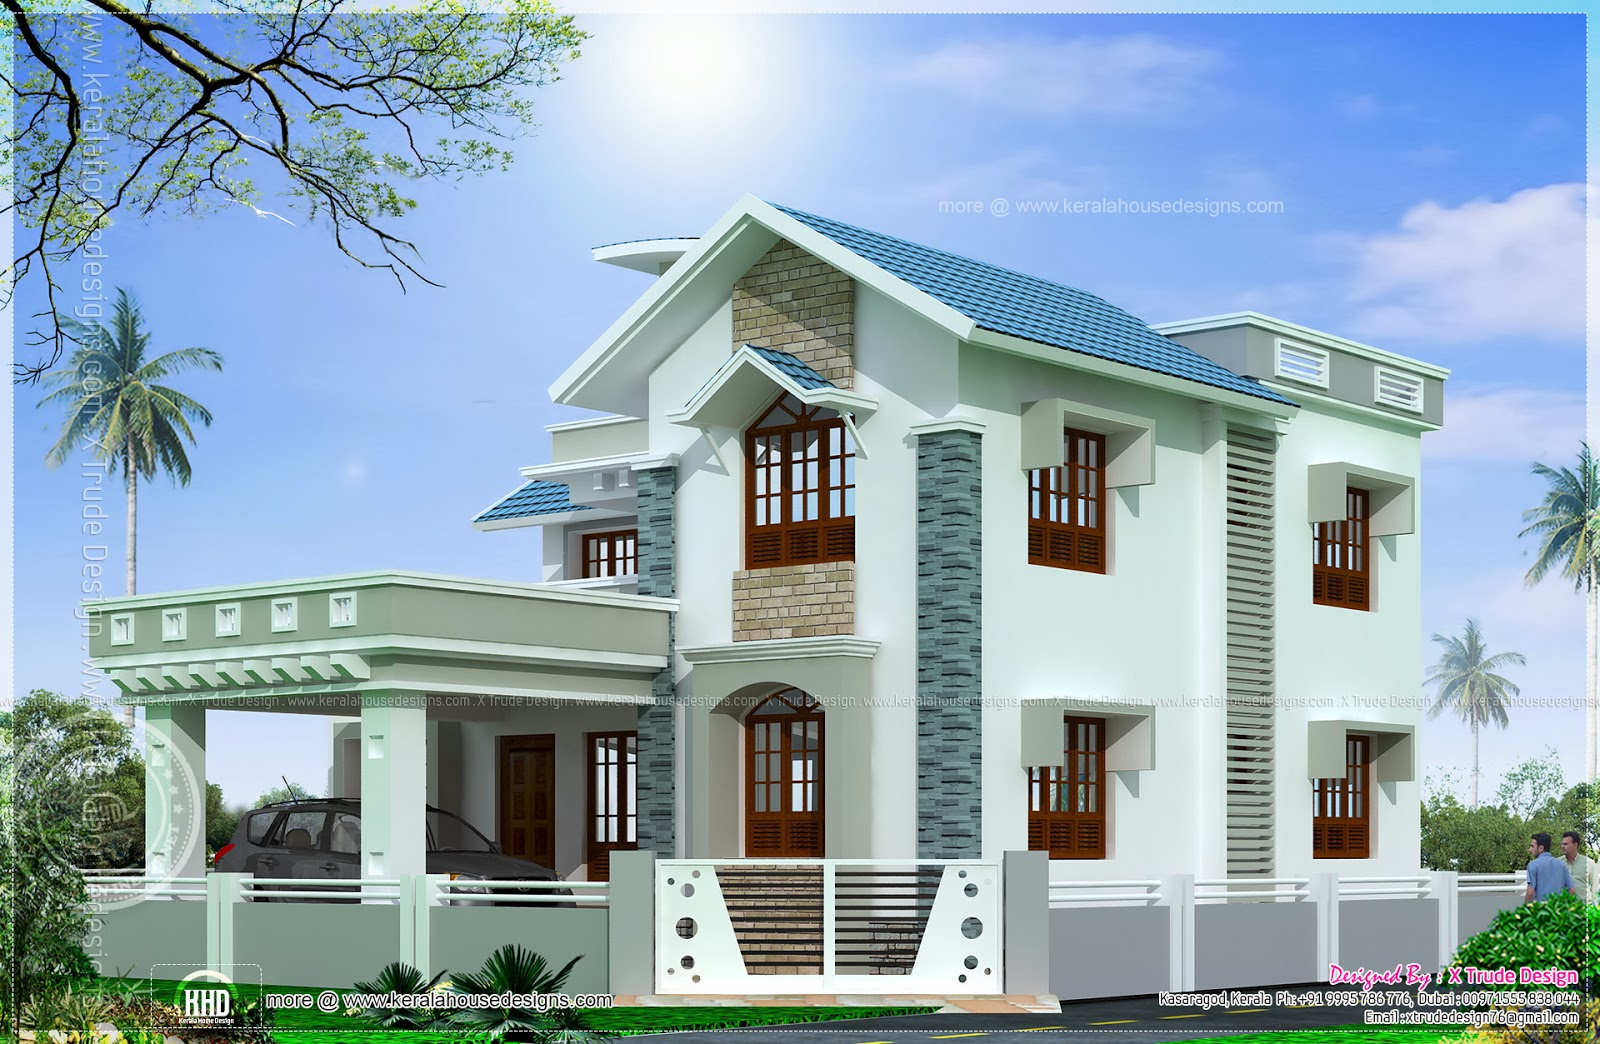 Sweet home beautiful square feet house elevation kerala for Beautiful small house plans